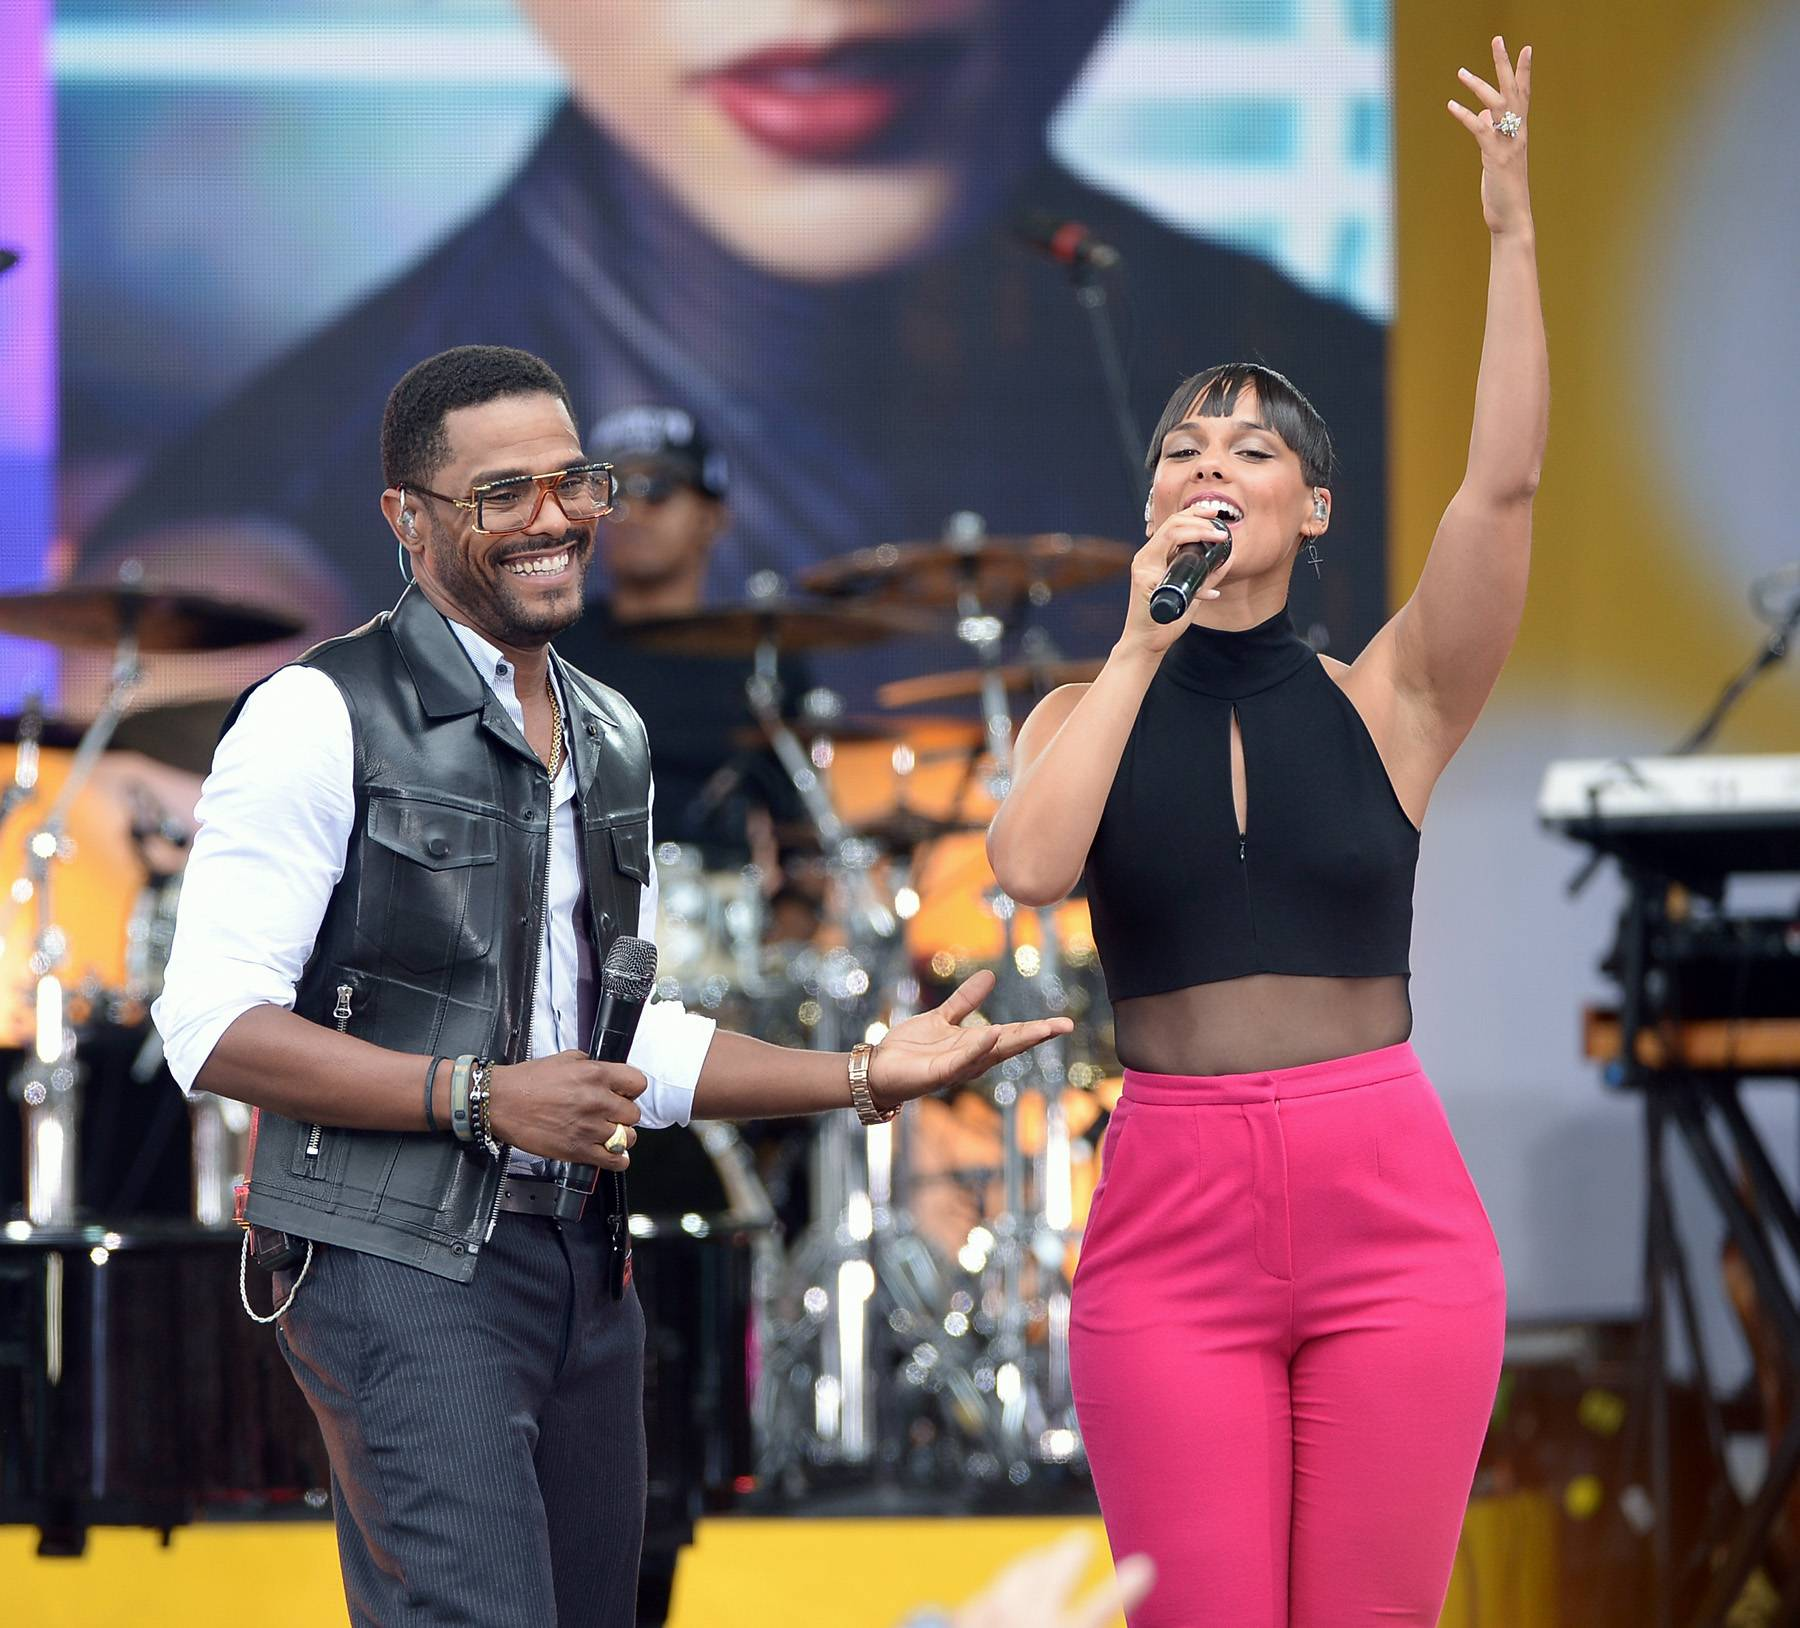 """The Ashford & Simpson Songwriter's Award - """"Fire We Make"""" -(Alicia Keys, Andrew Wansel, Warren Felder, Gary Clark Jr.) - Alicia Keys was truly aGirl on Fire with this steamy duet with veteran R&B crooner Maxwell.   (Photo: Michael Loccisano/Getty Images)"""